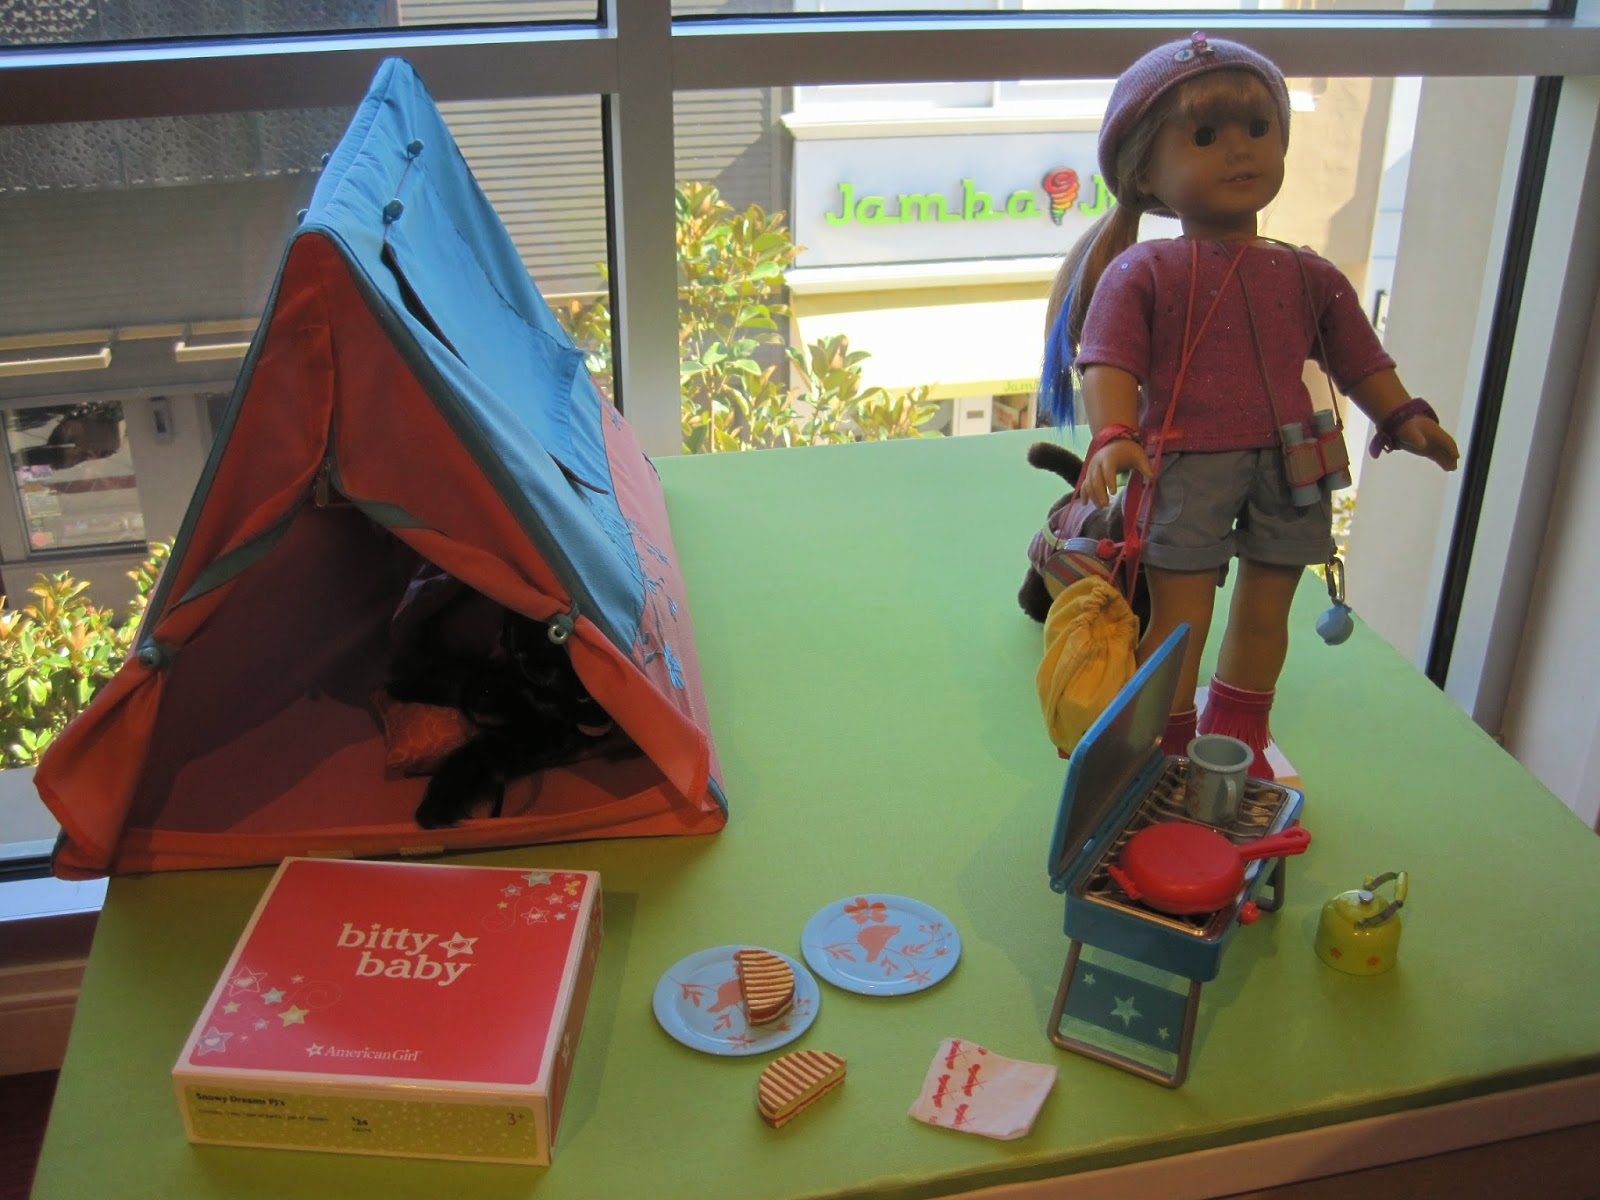 One of the other displays for kiddos to play with included the Sunset Sleepover Tent the Sunset Sleepover Bag the Sparkly C& Outfit ... & Never Grow Up: A Momu0027s Guide to Dolls and More: American Girl ...